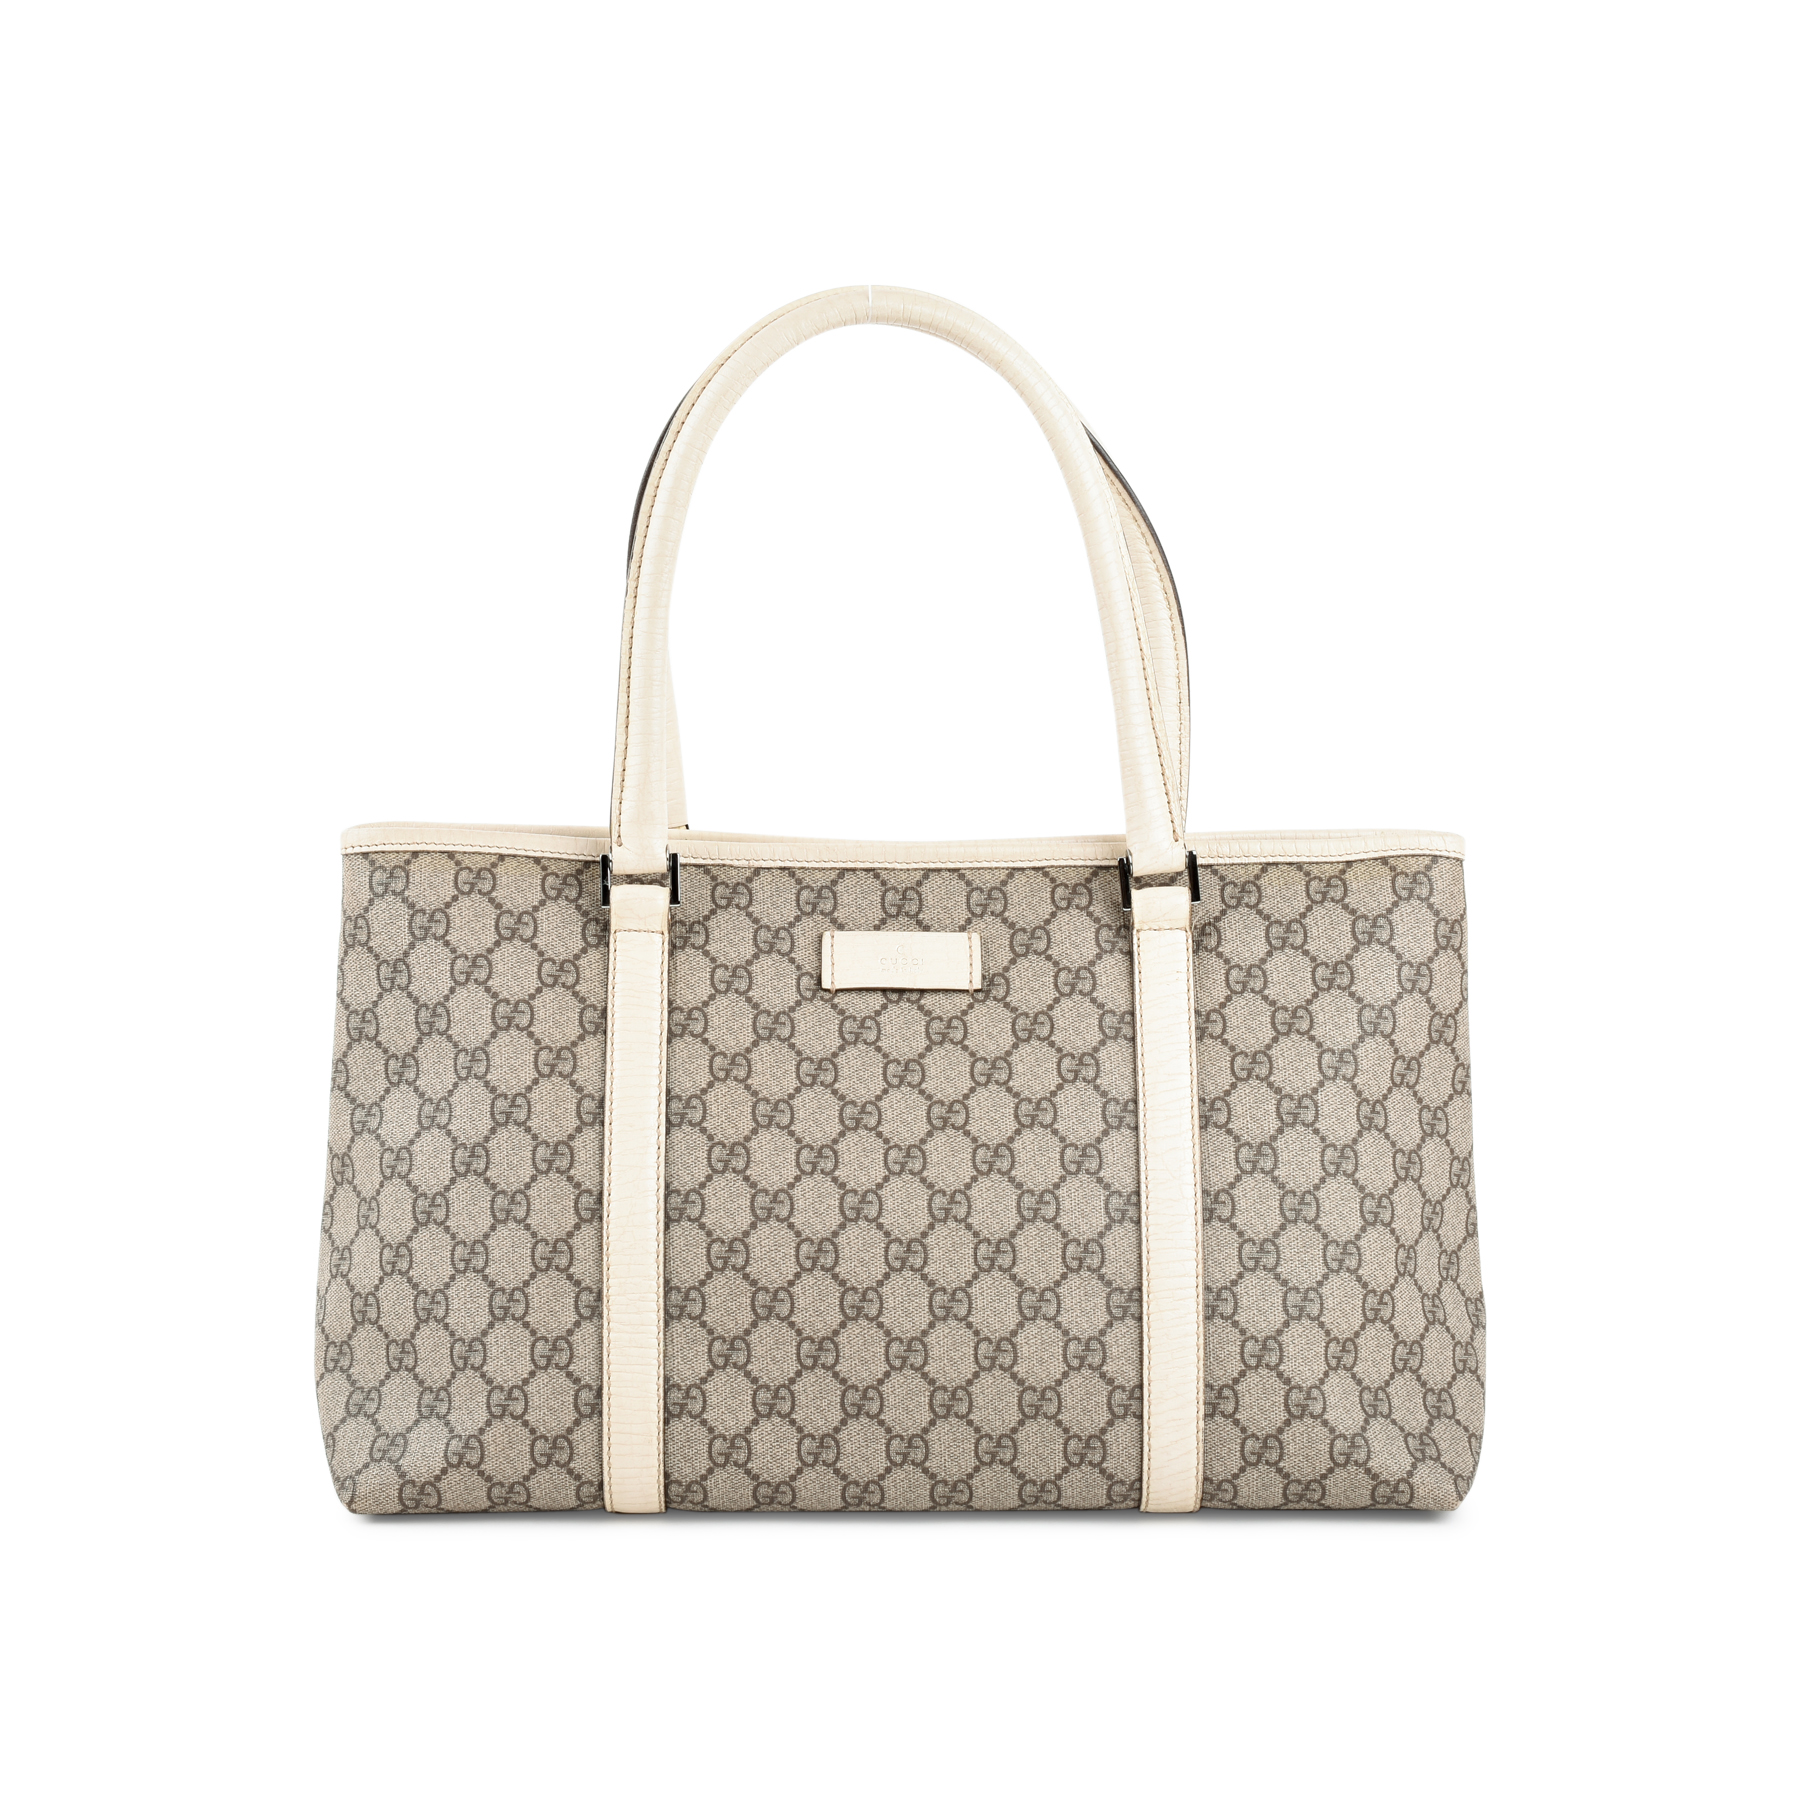 ac22f85e6eae6d Authentic Second Hand Gucci GG Monogram Tote (PSS-478-00001) | THE FIFTH  COLLECTION